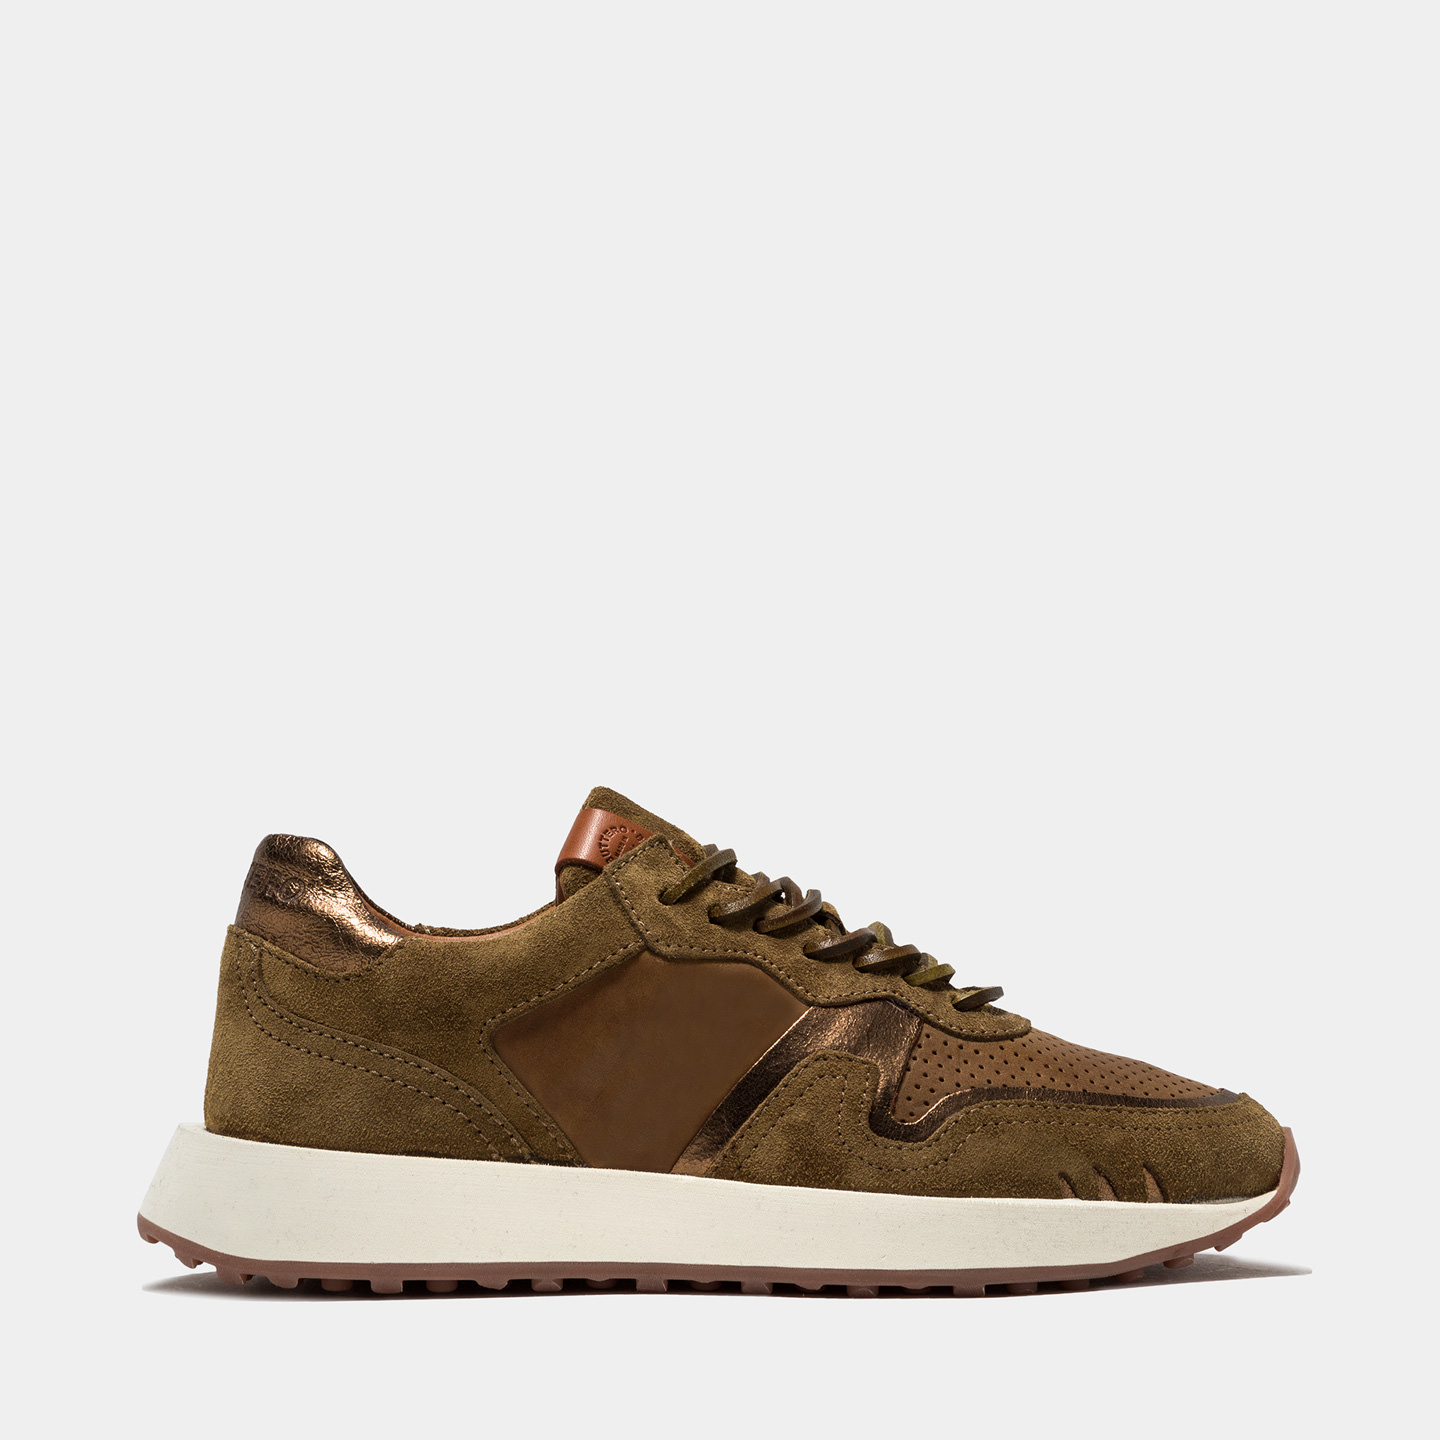 BUTTERO: FUTURA SNEAKERS IN SUEDE AND PLANTATION CRACKLE EFFECT LEATHER